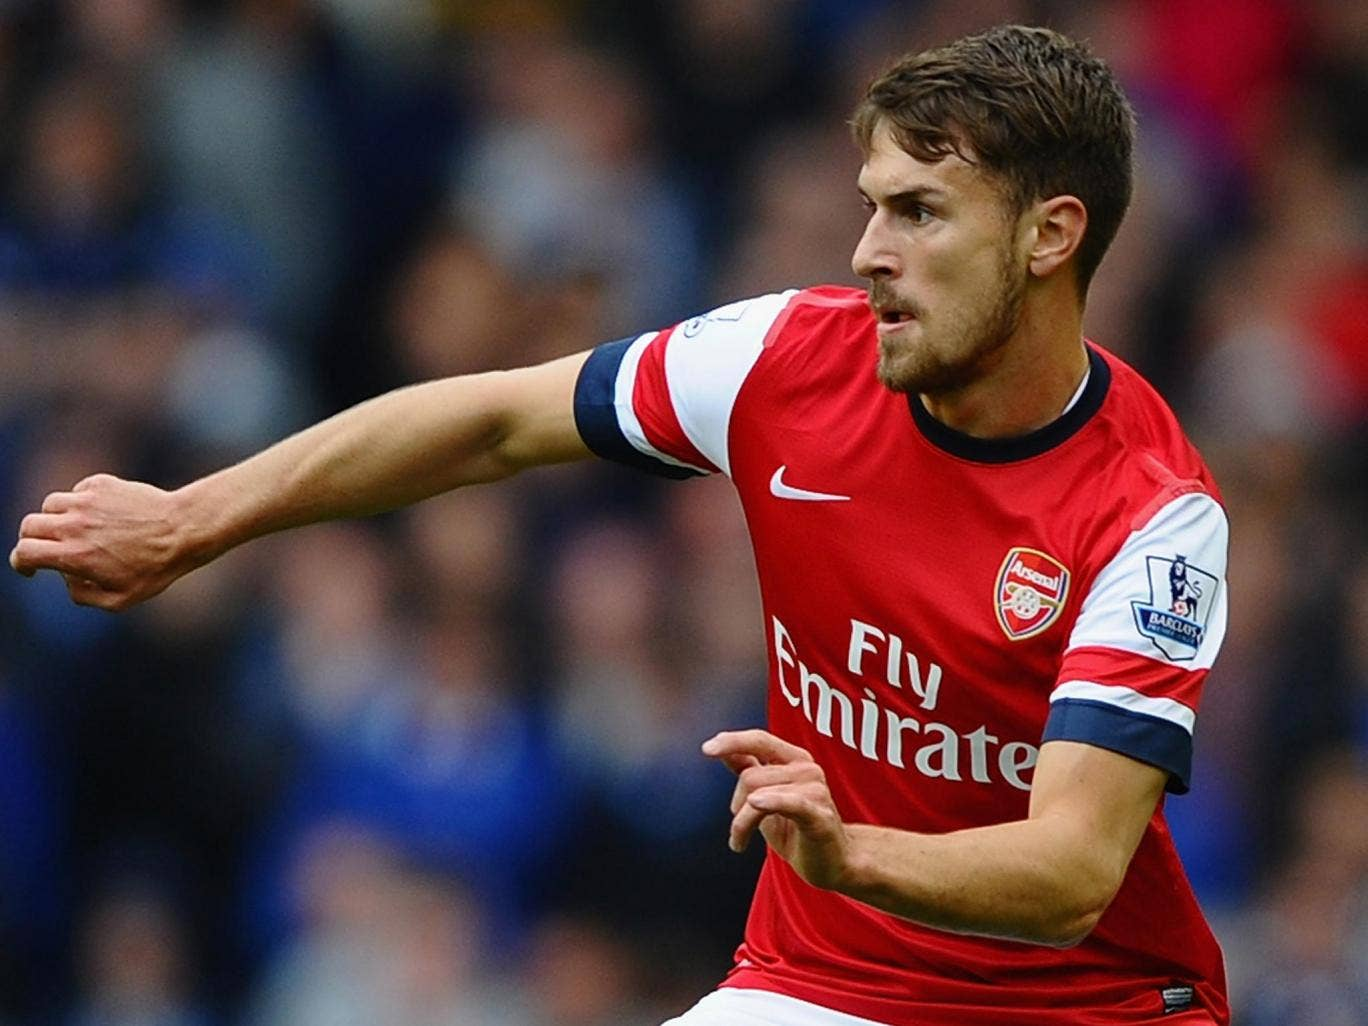 Aaron Ramsey made his return after 14 weeks out in the 3-0 defeat to Everton